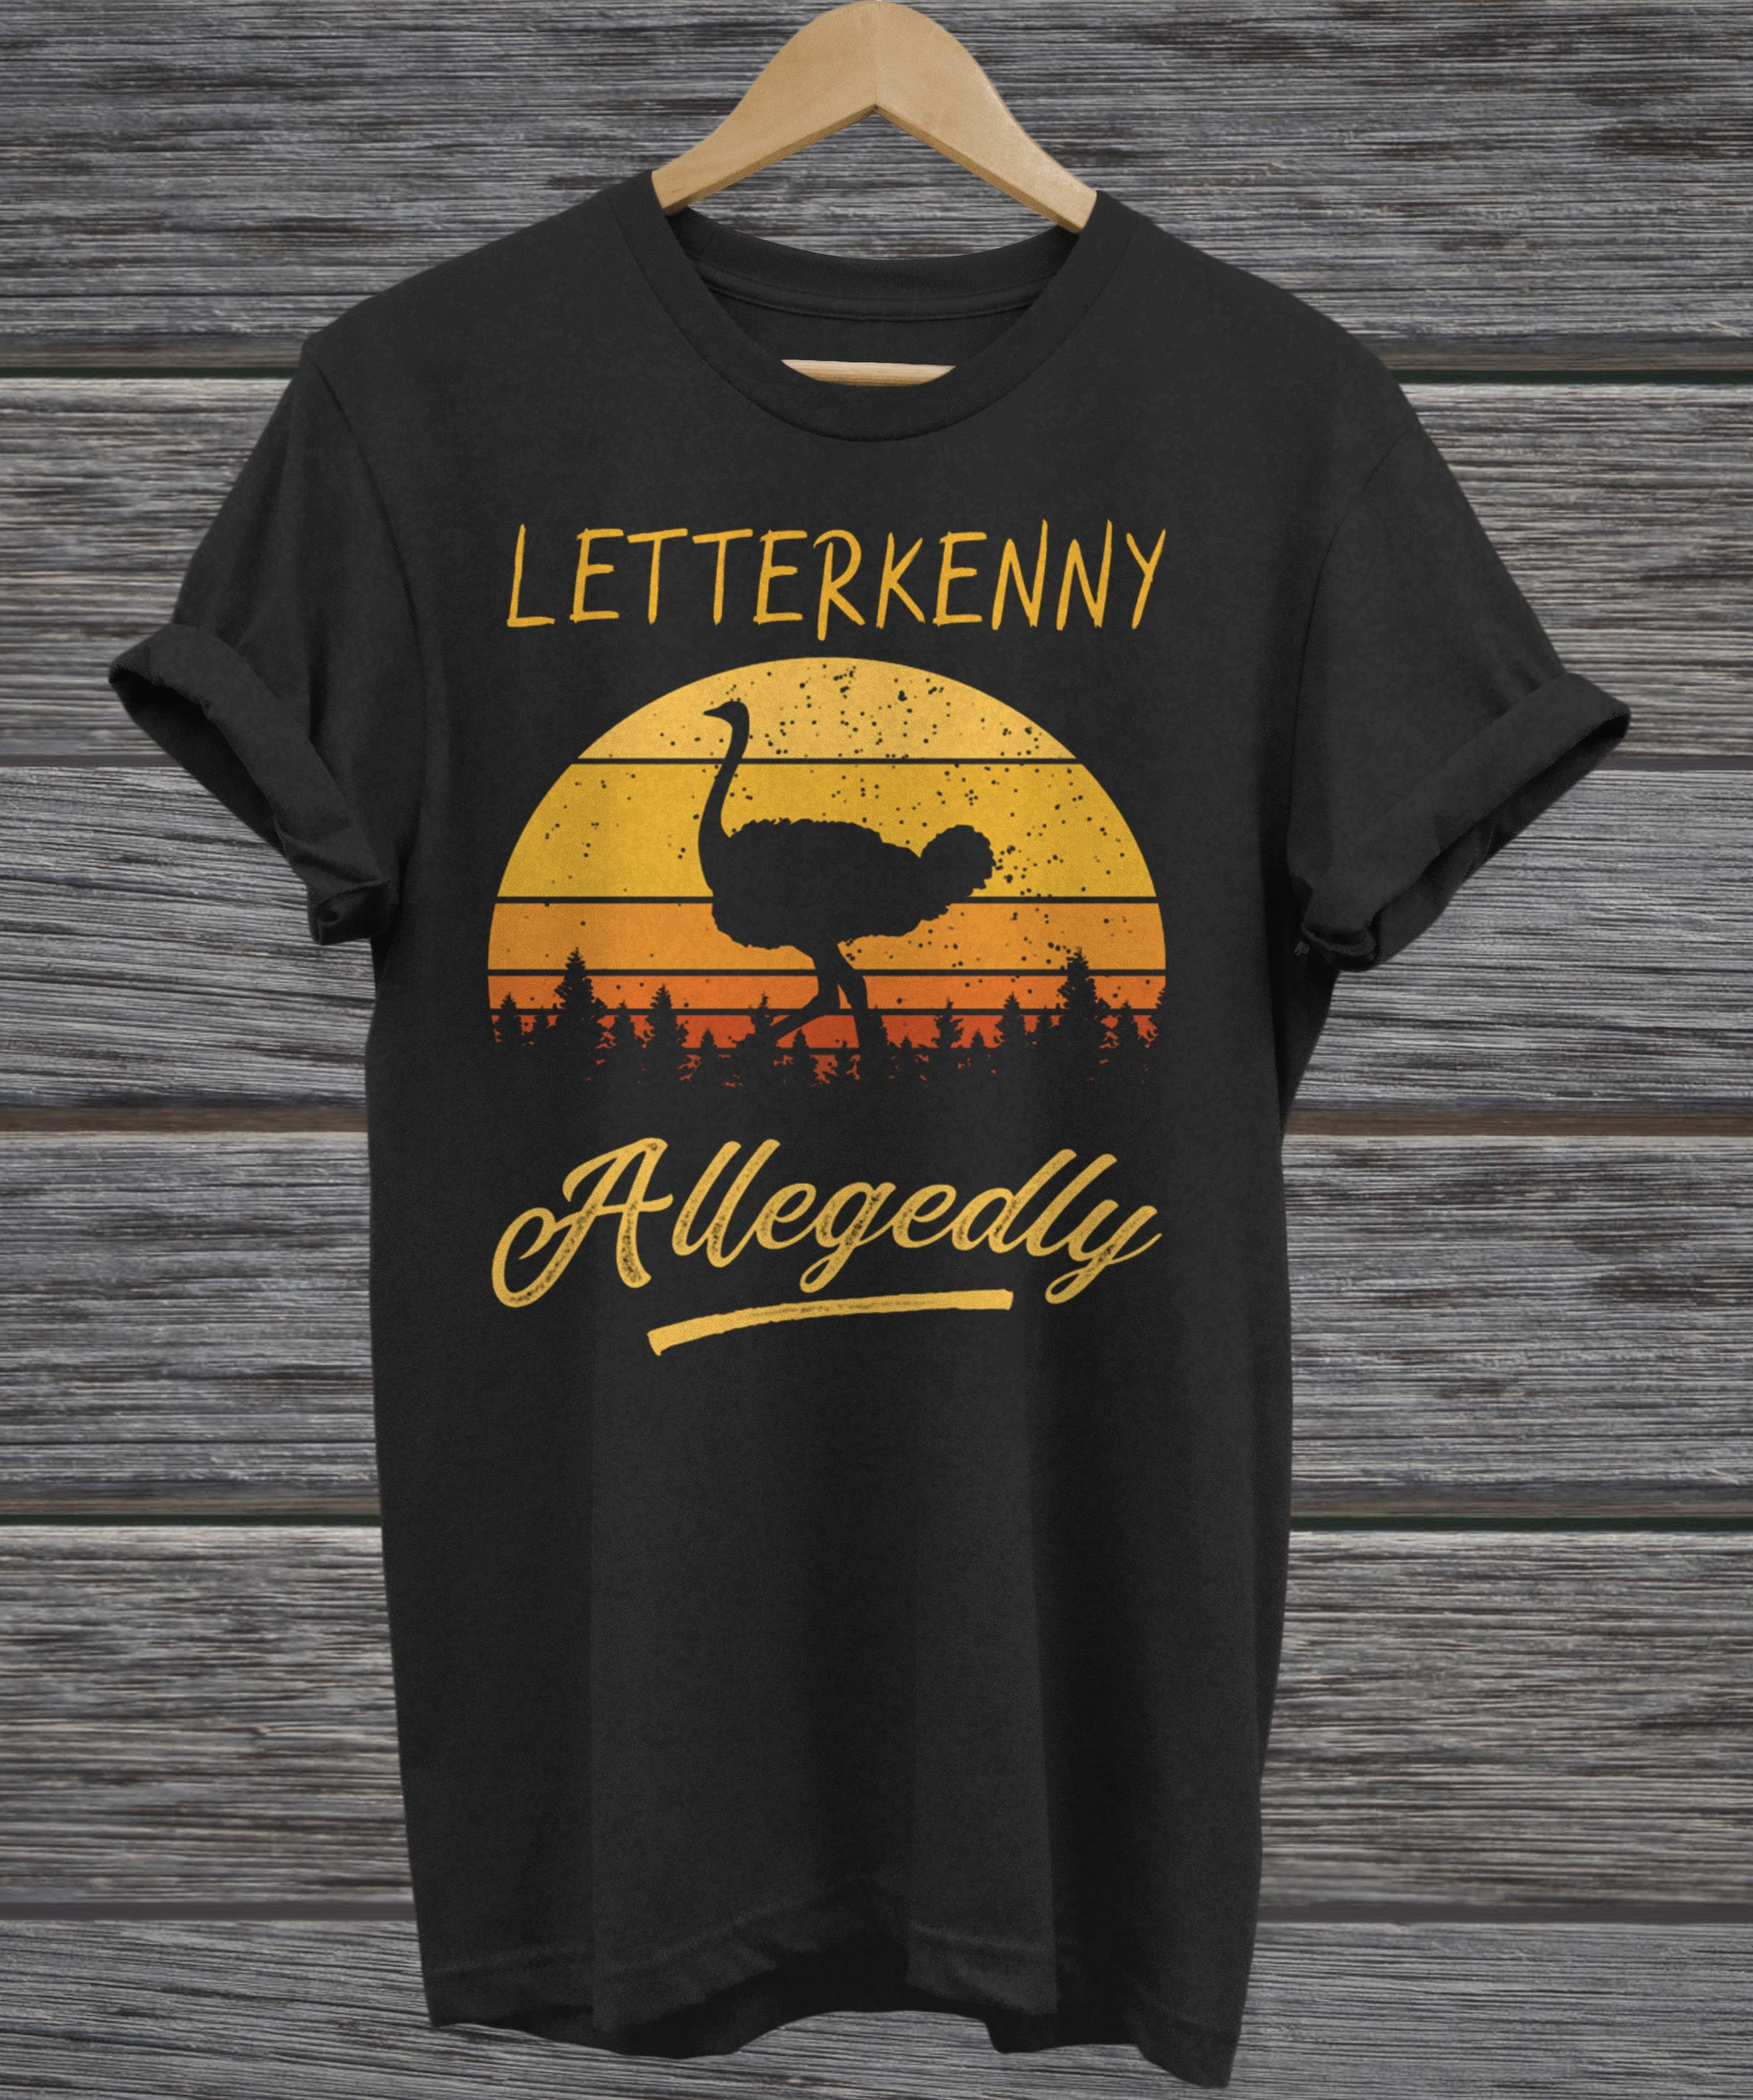 Letterkenny Allegedly Ostrich retro vintage sunset tank top